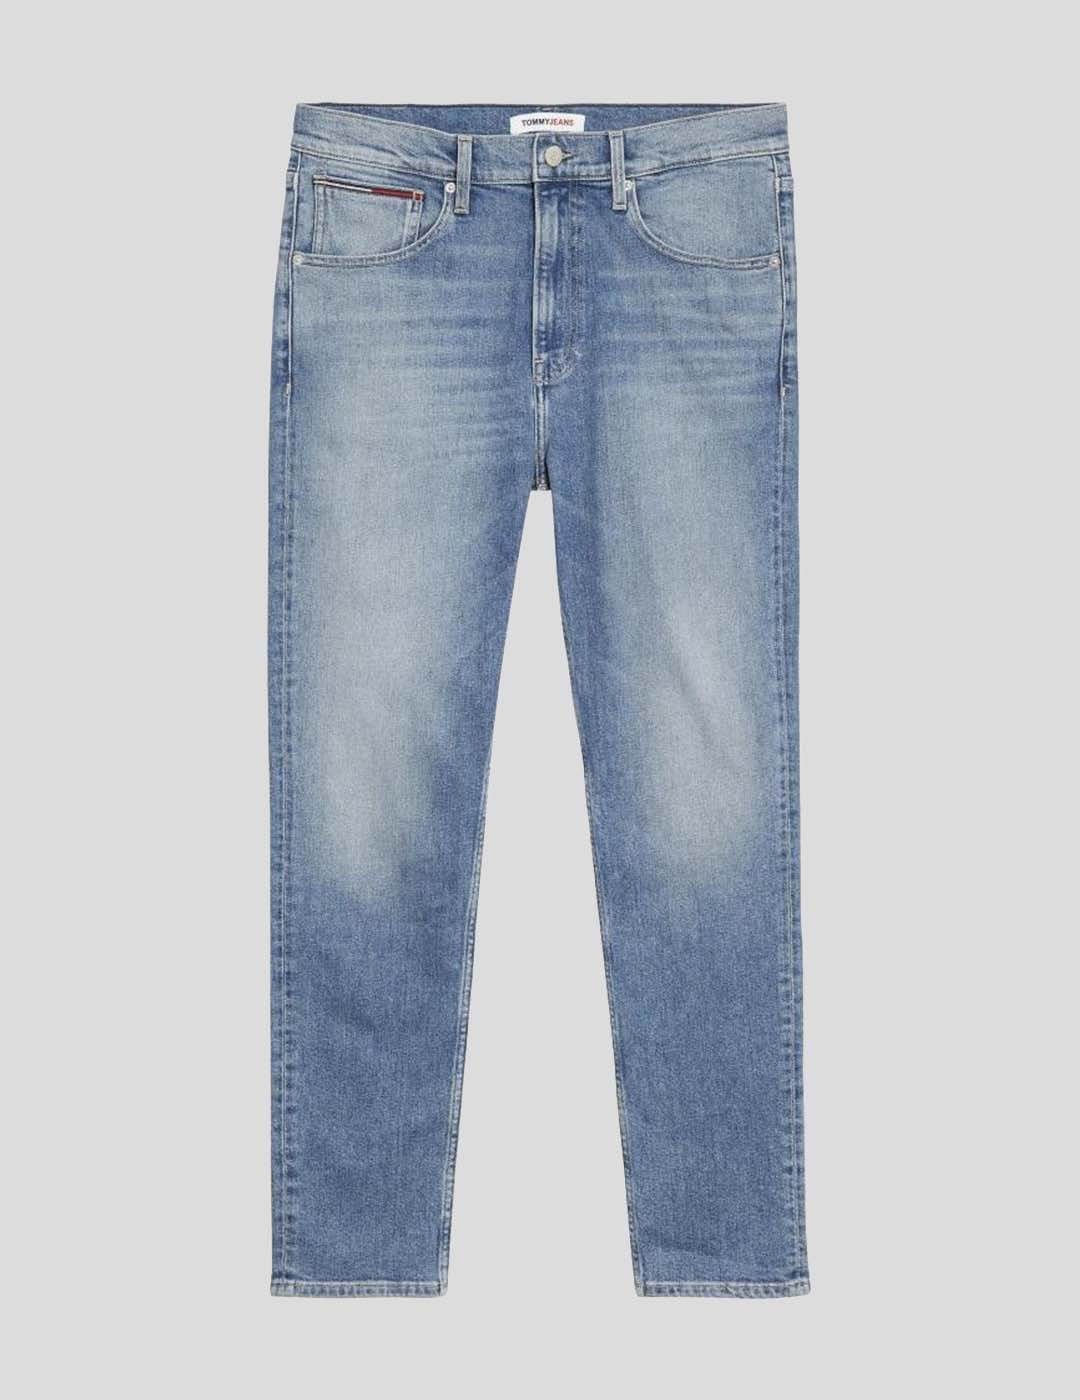 PANTALÓN TOMMY JEANS REY RELAXED TAPERED JEANS DENIM